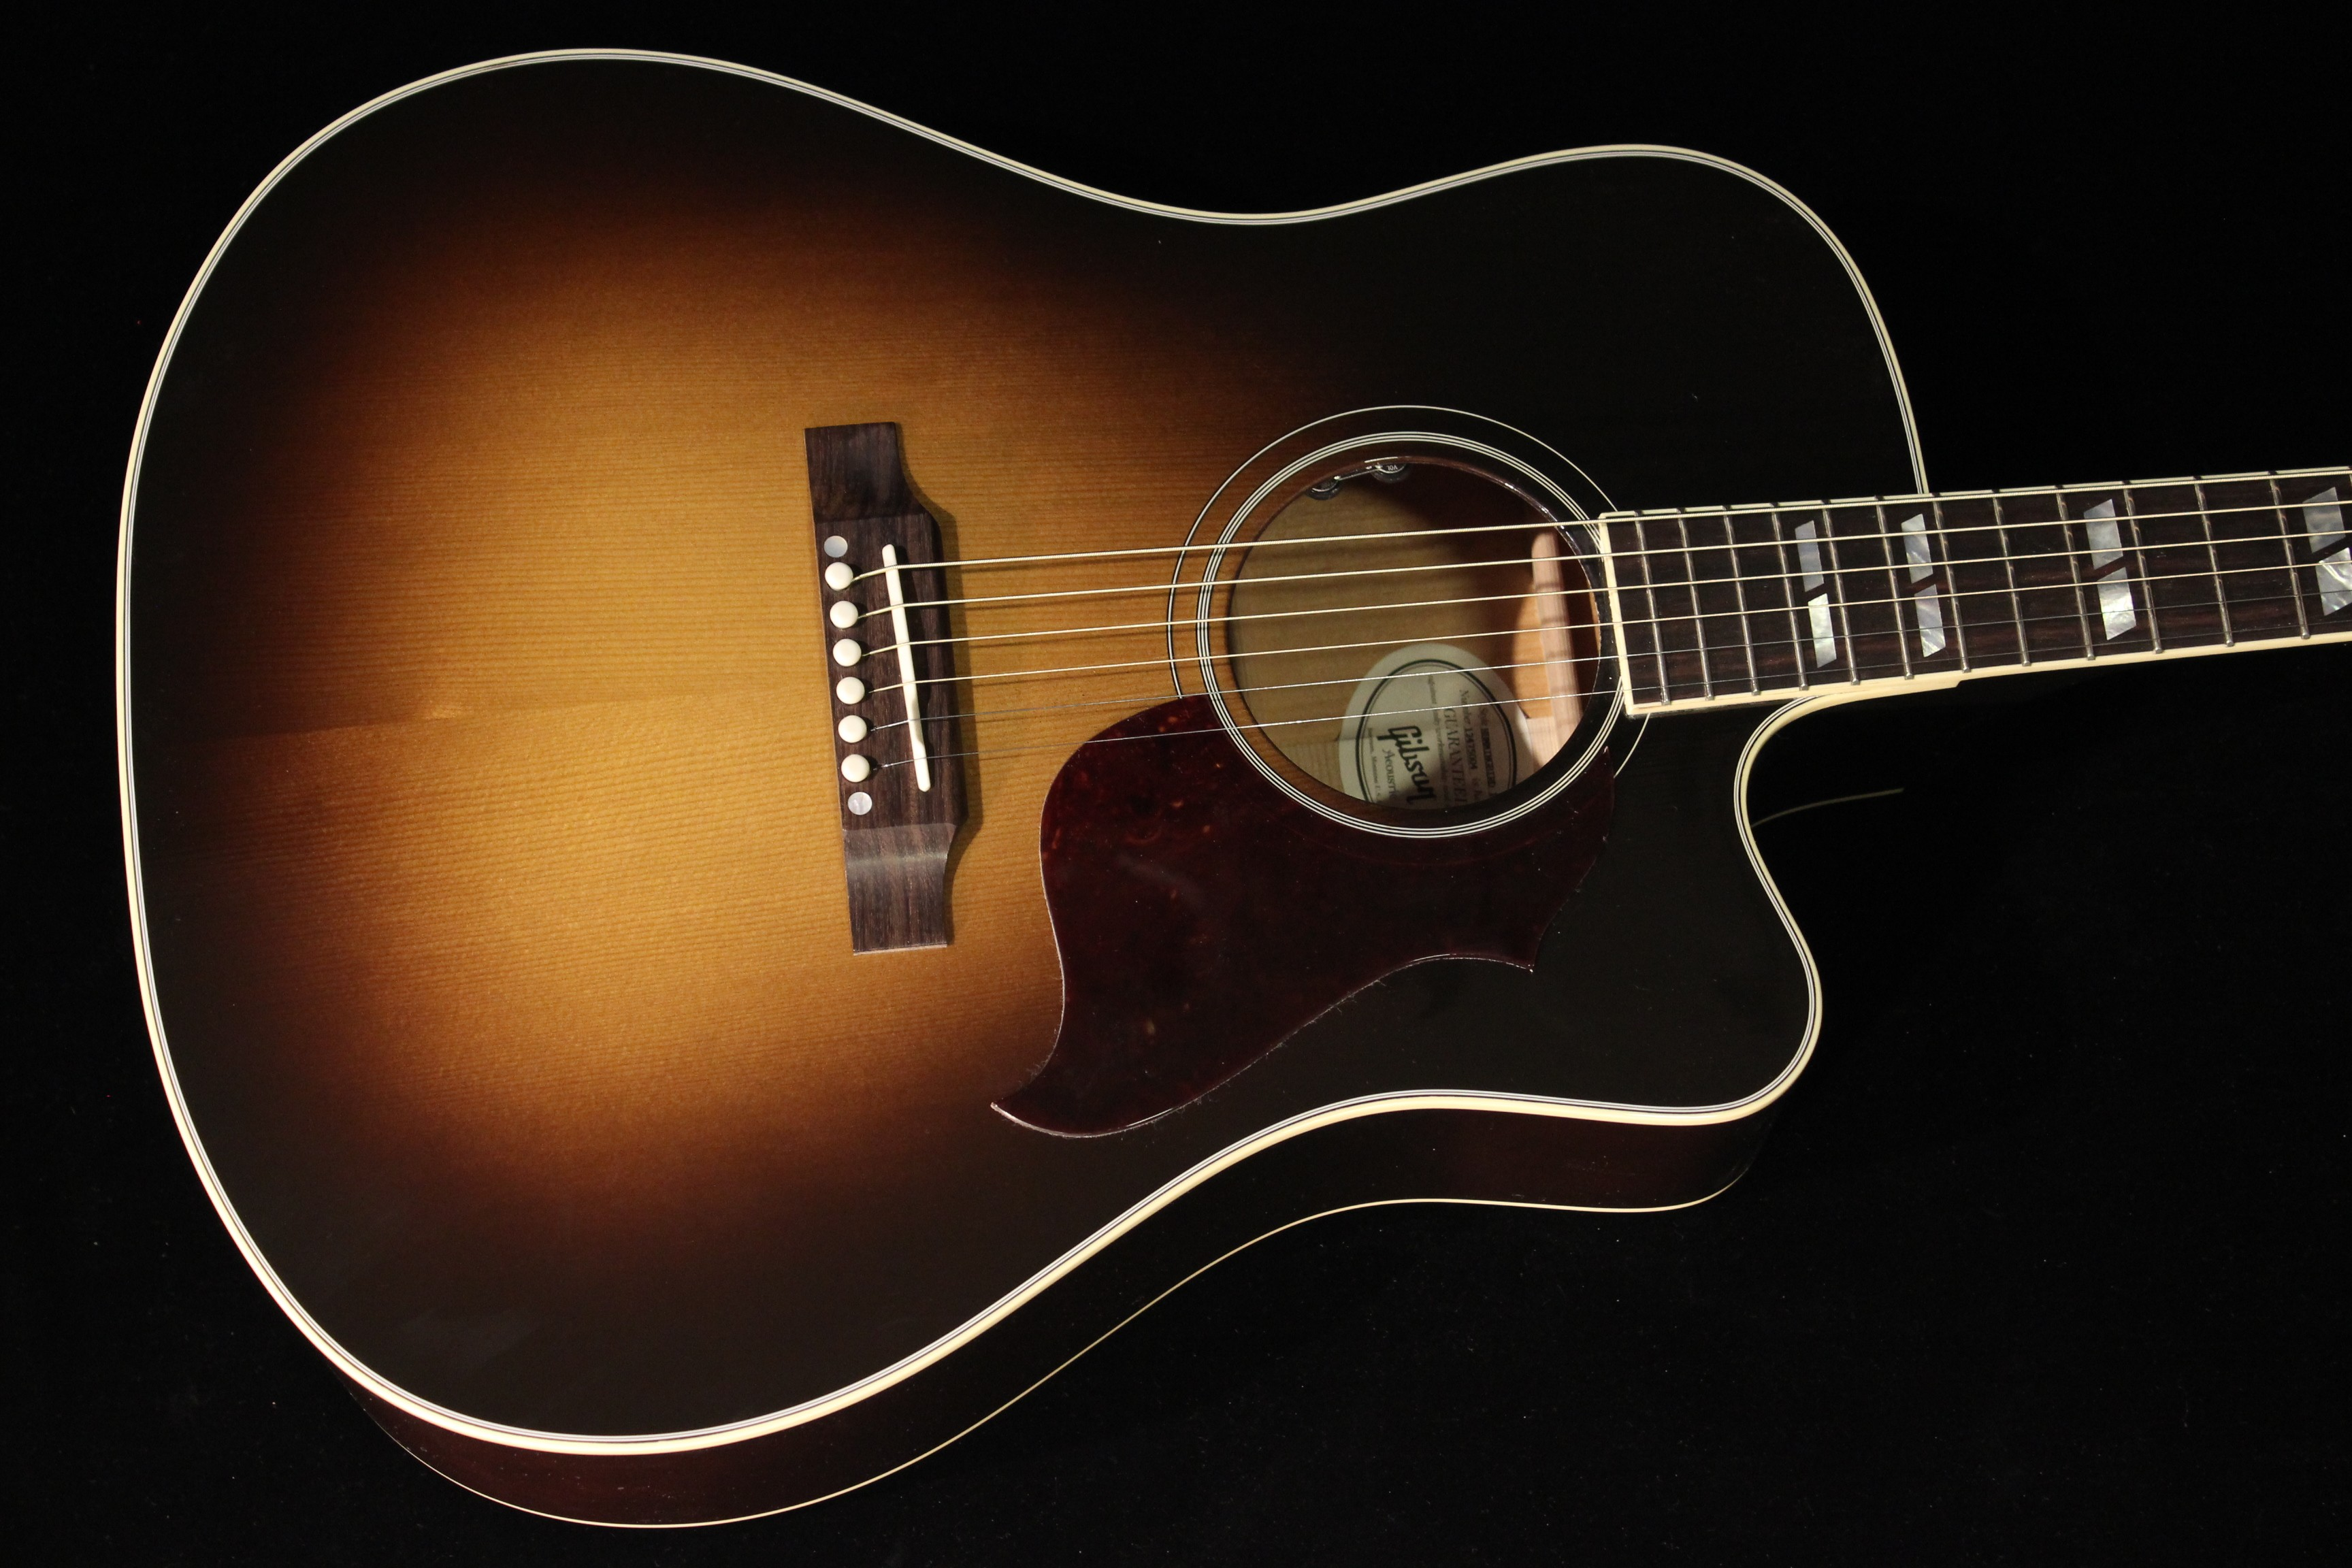 DATING GIBSON GUITARS BY REFERENCE OF SERIAL NUMBERS